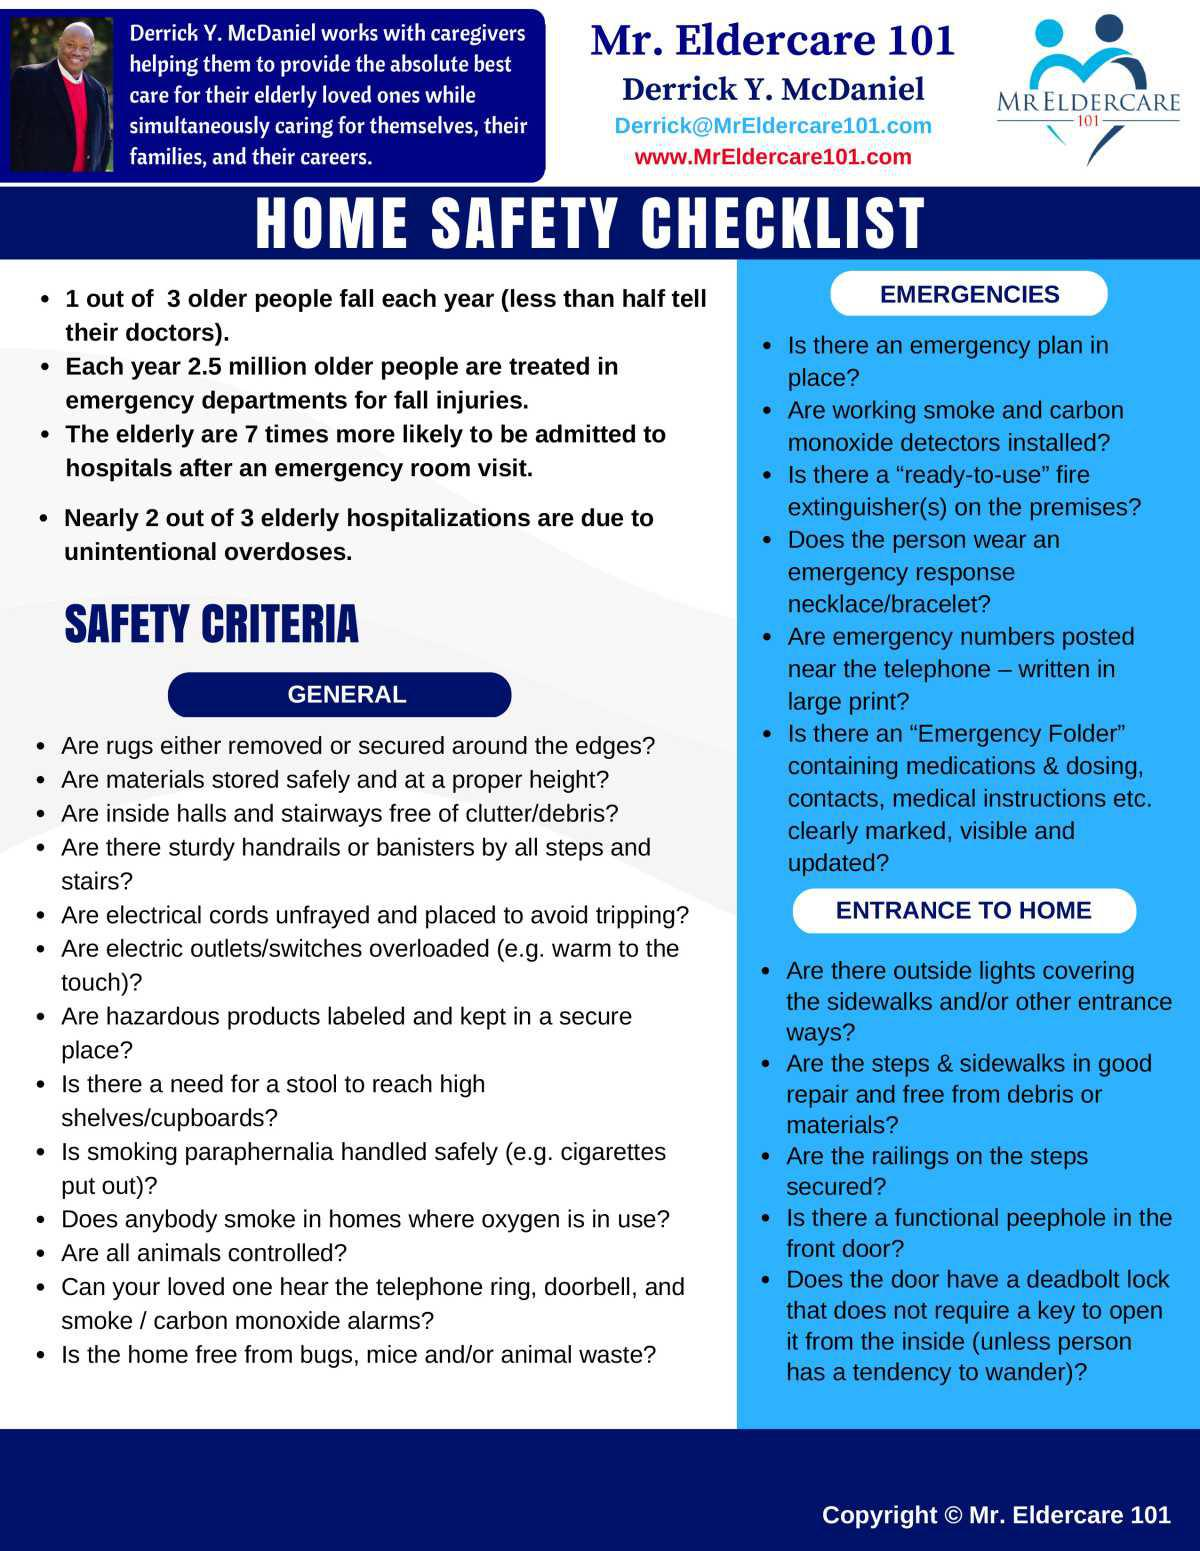 Home Safety Checklist - Front